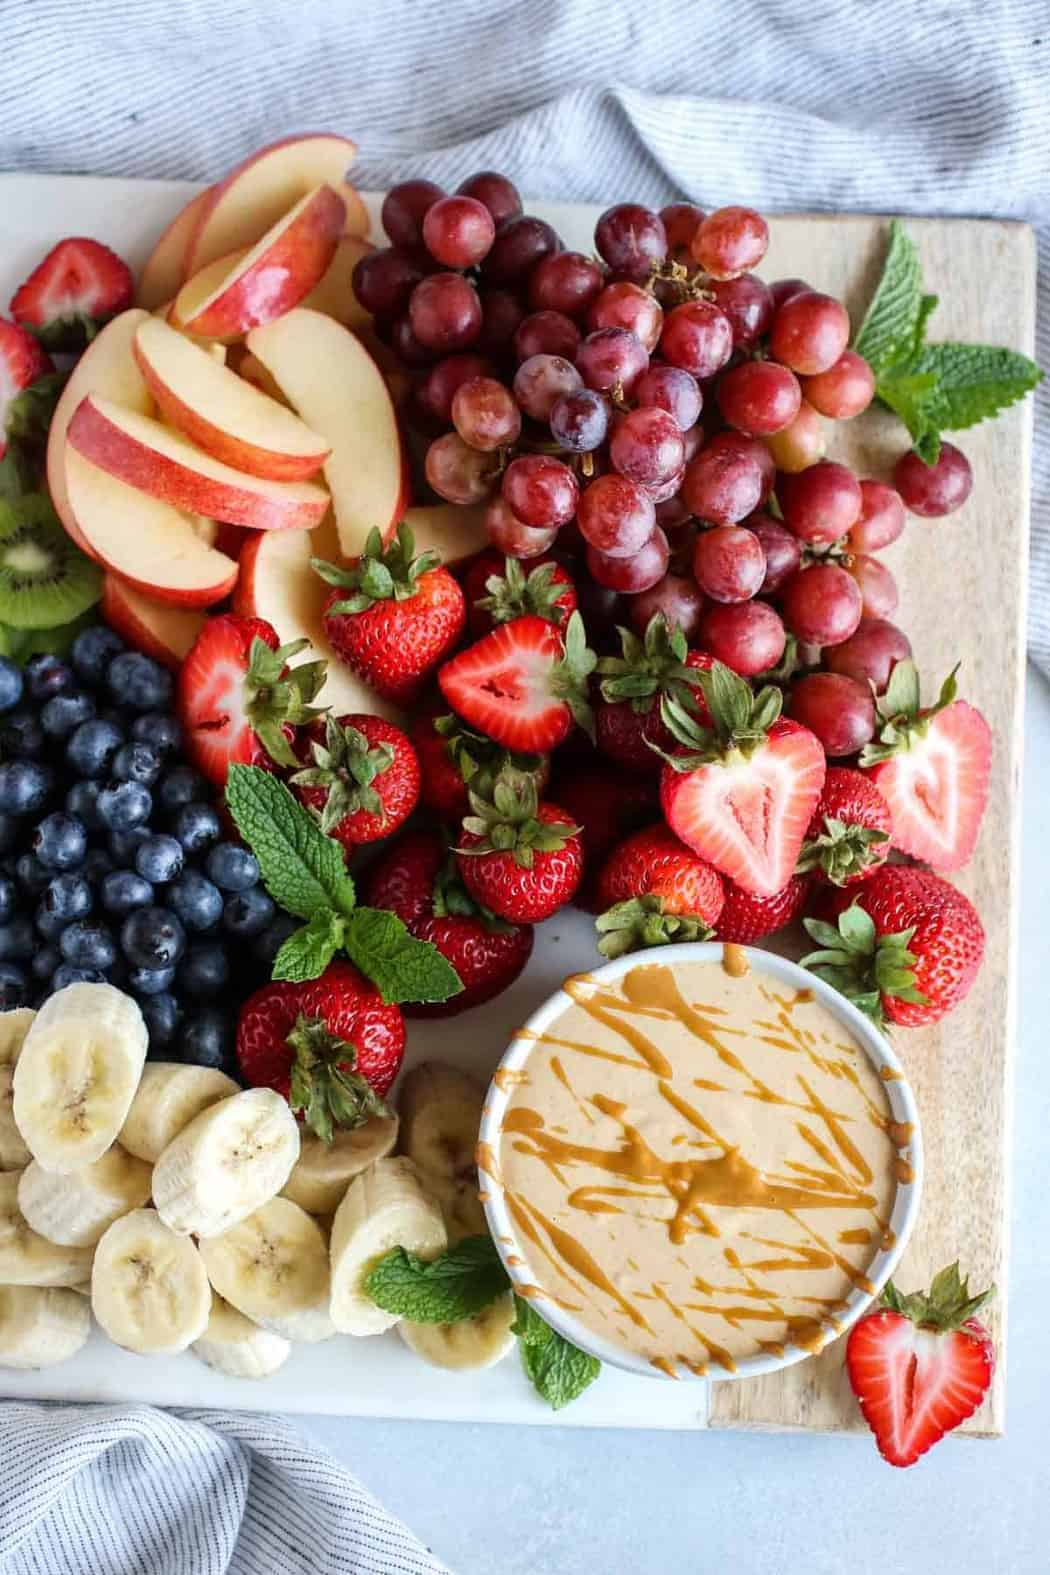 Easy Peanut Butter Yogurt Fruit Dip The Real Food Dietitians